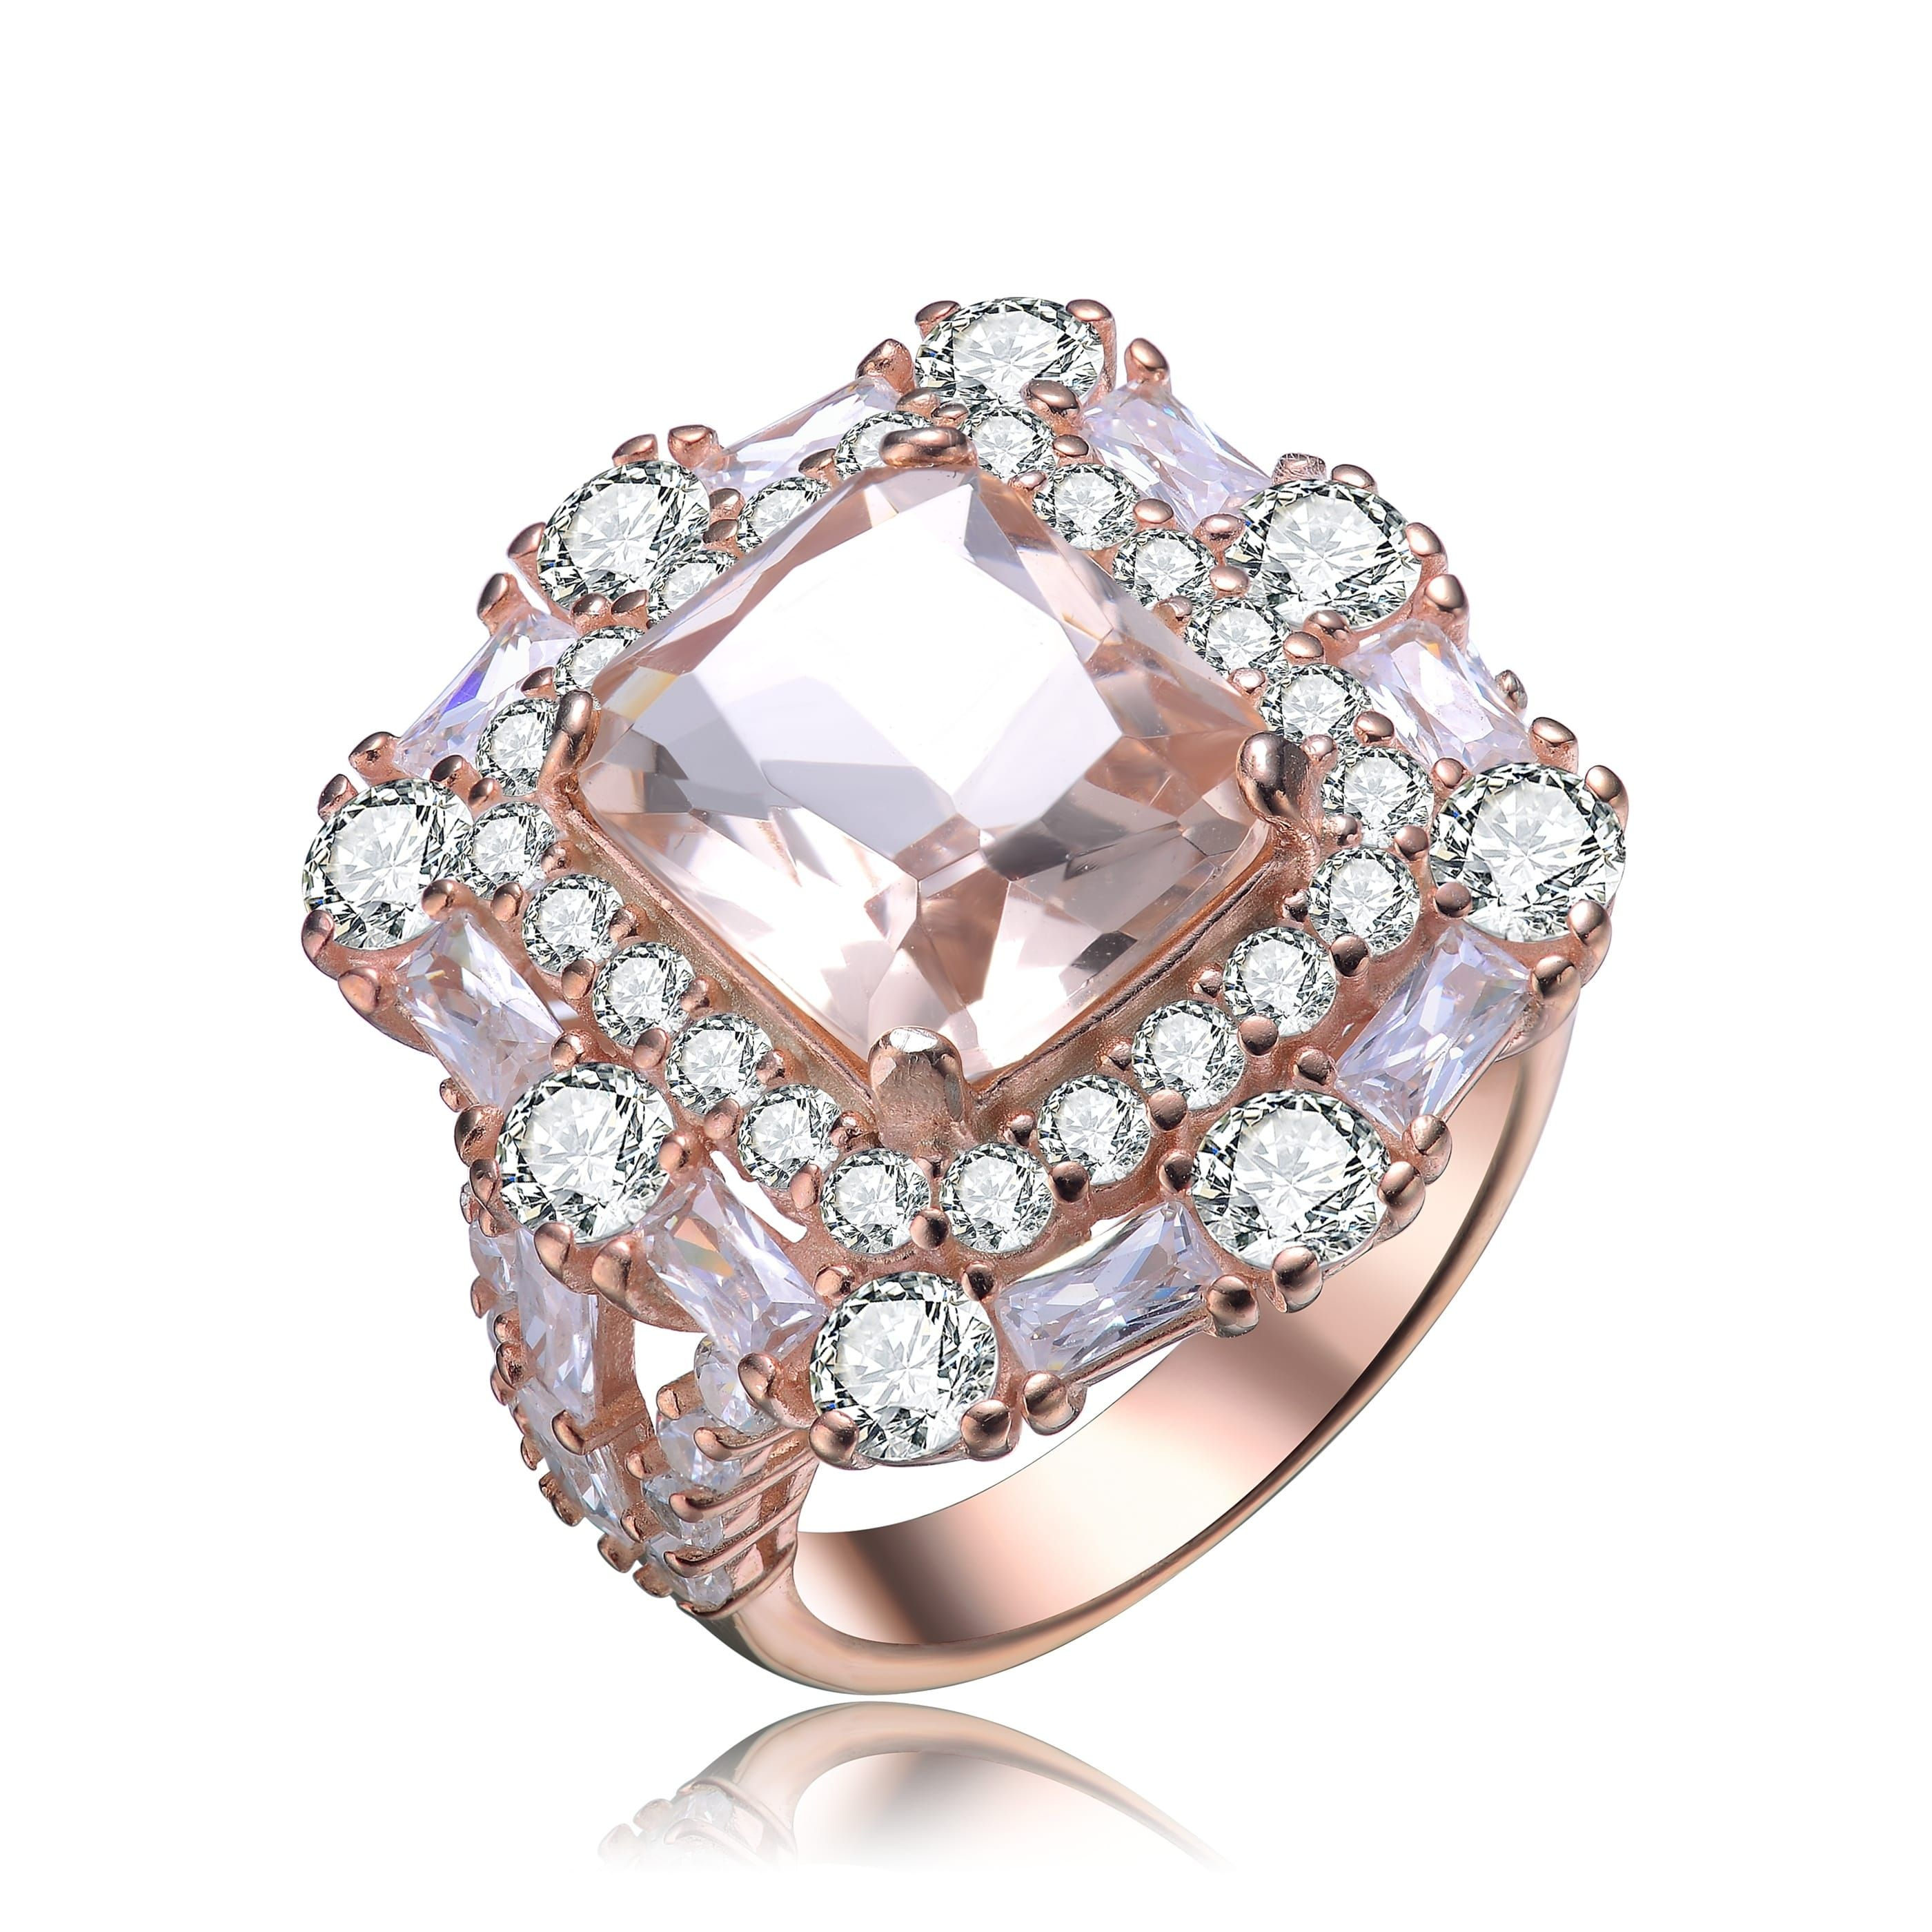 Clear Cubic Zirconia Flowers Ring Two Tone Plated Sterling Silver